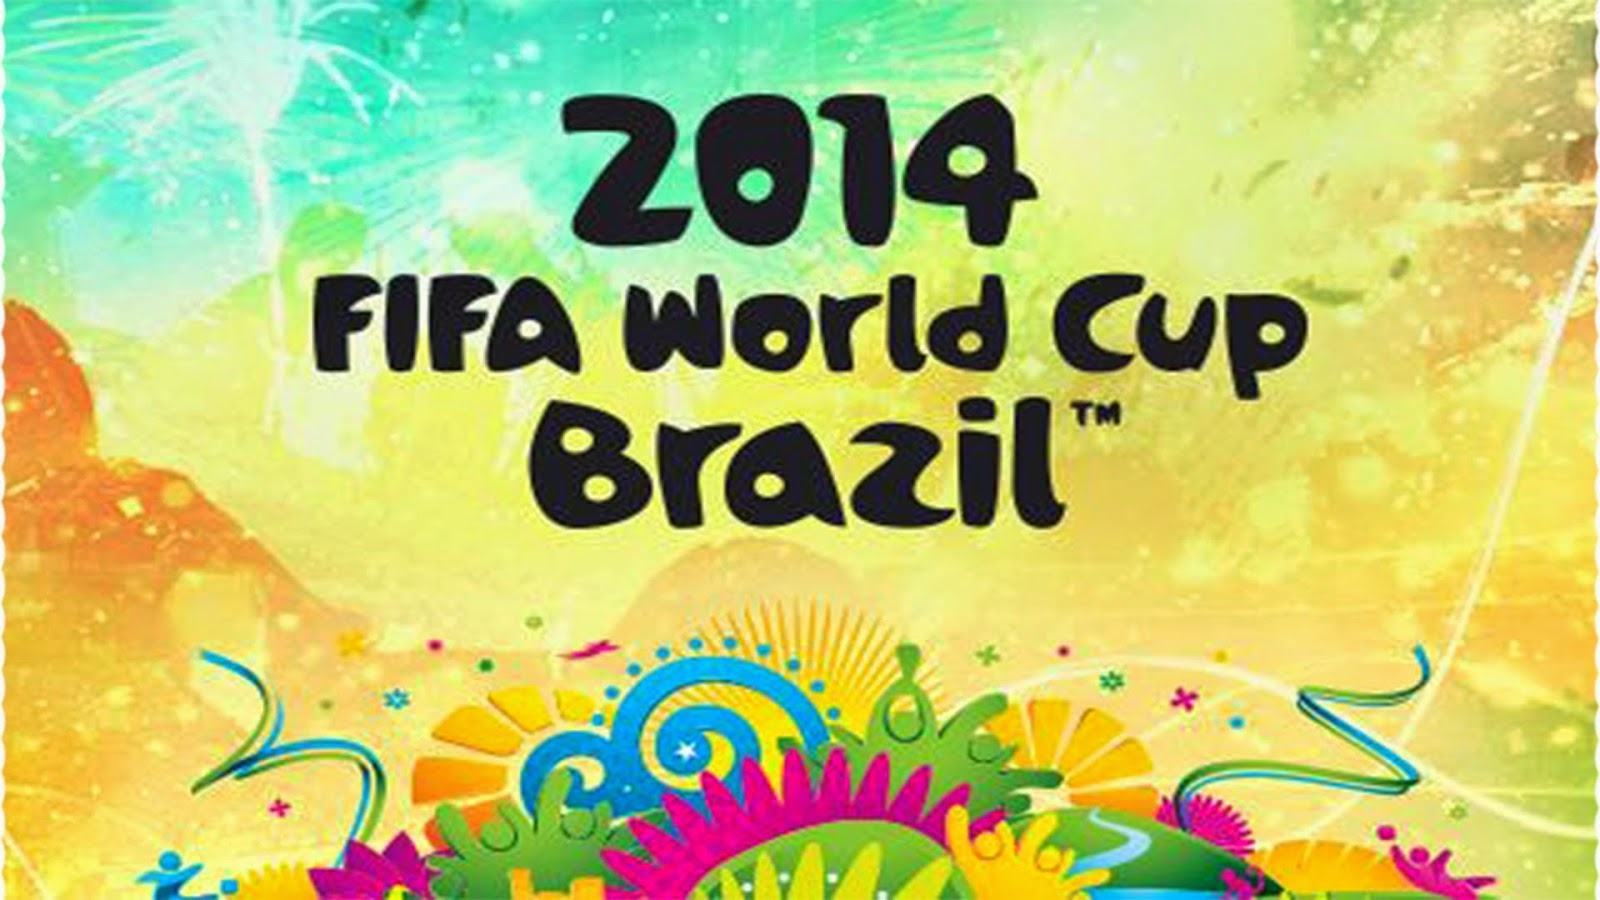 http://worldsoccertalk.com/2014/06/03/world-cup-tv-schedule-for-australian-tv-and-internet/